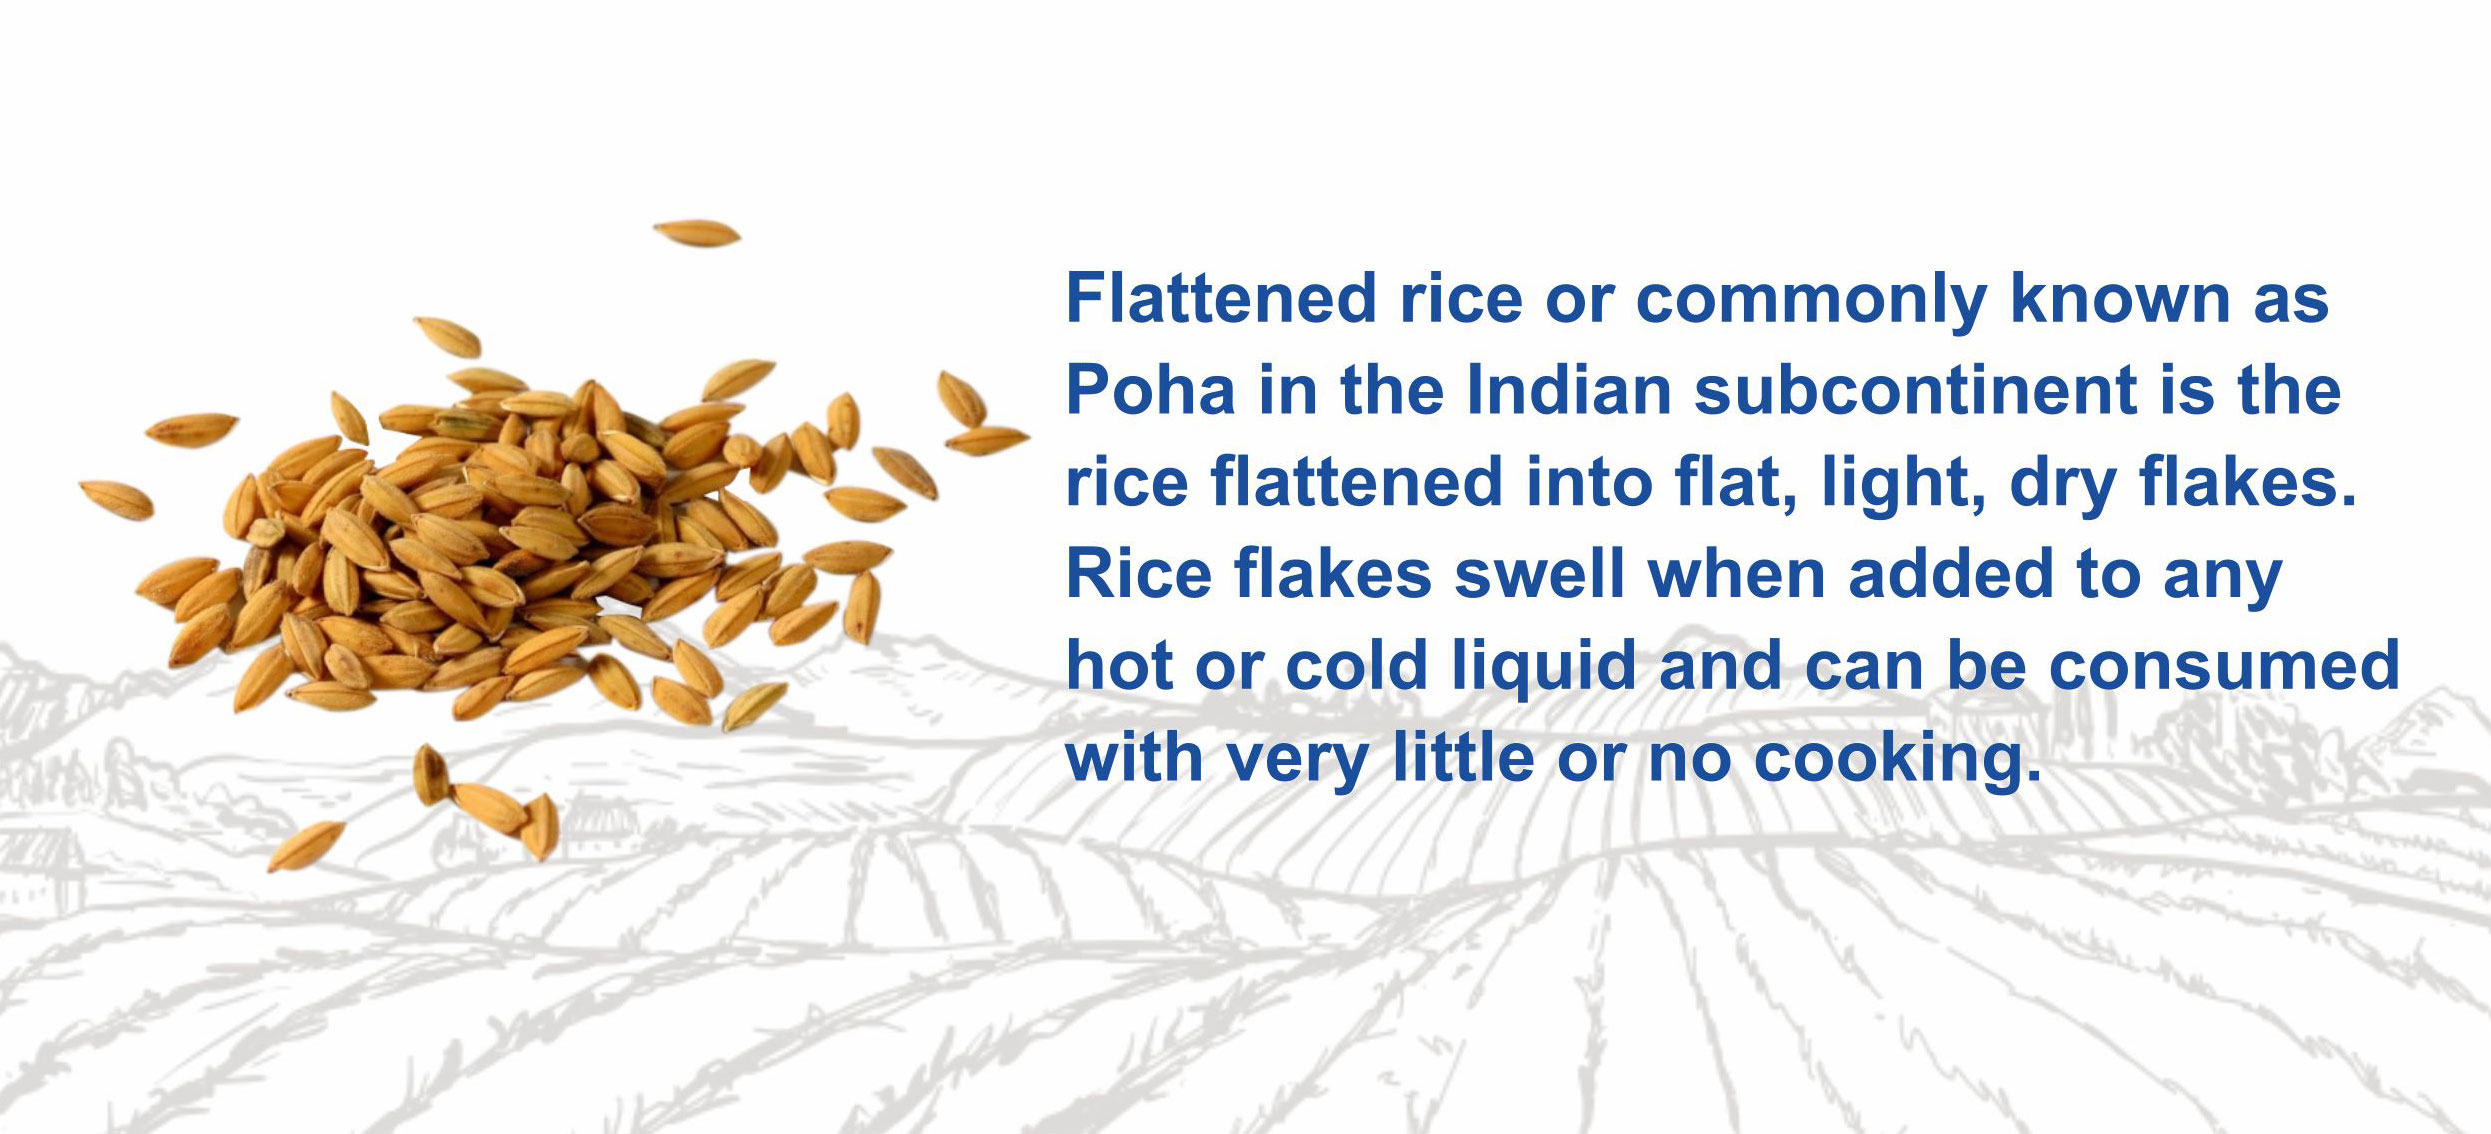 What is flattened rice